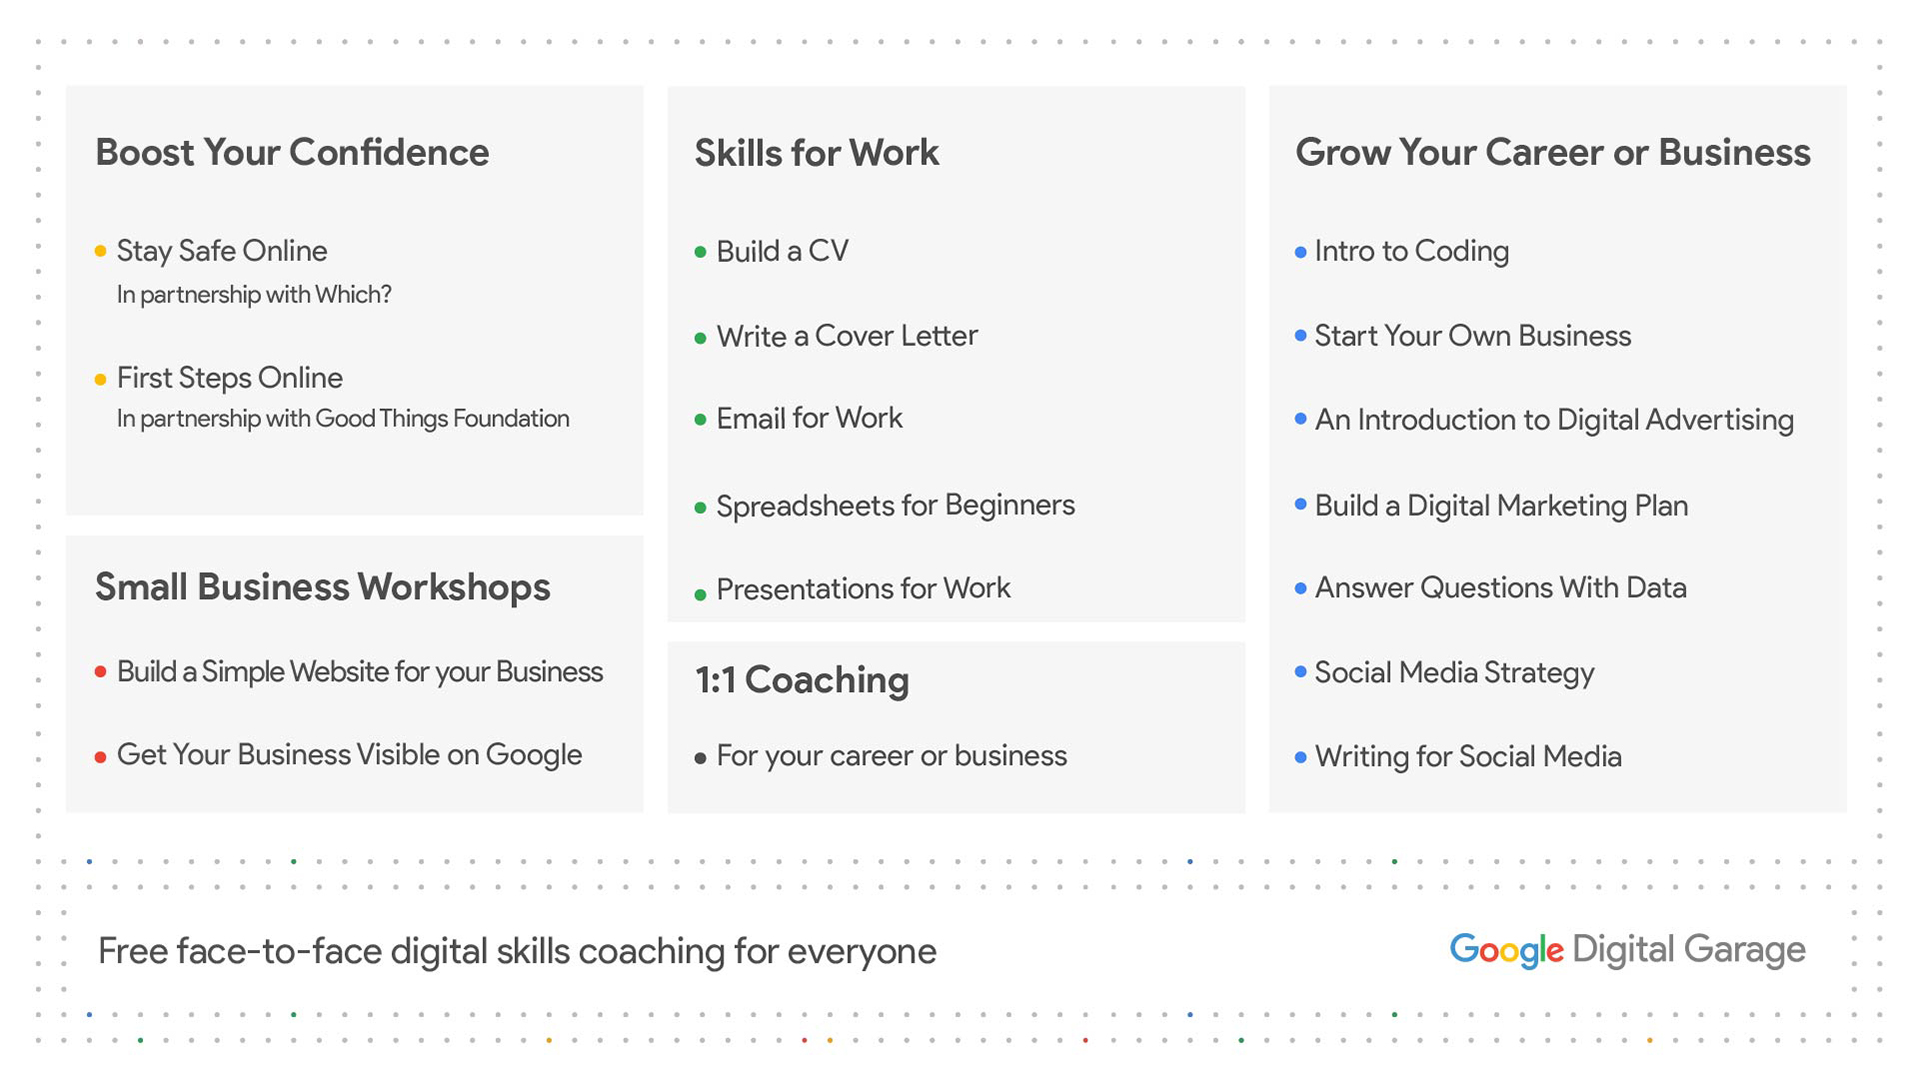 Courses available at the Digital Garage by Google